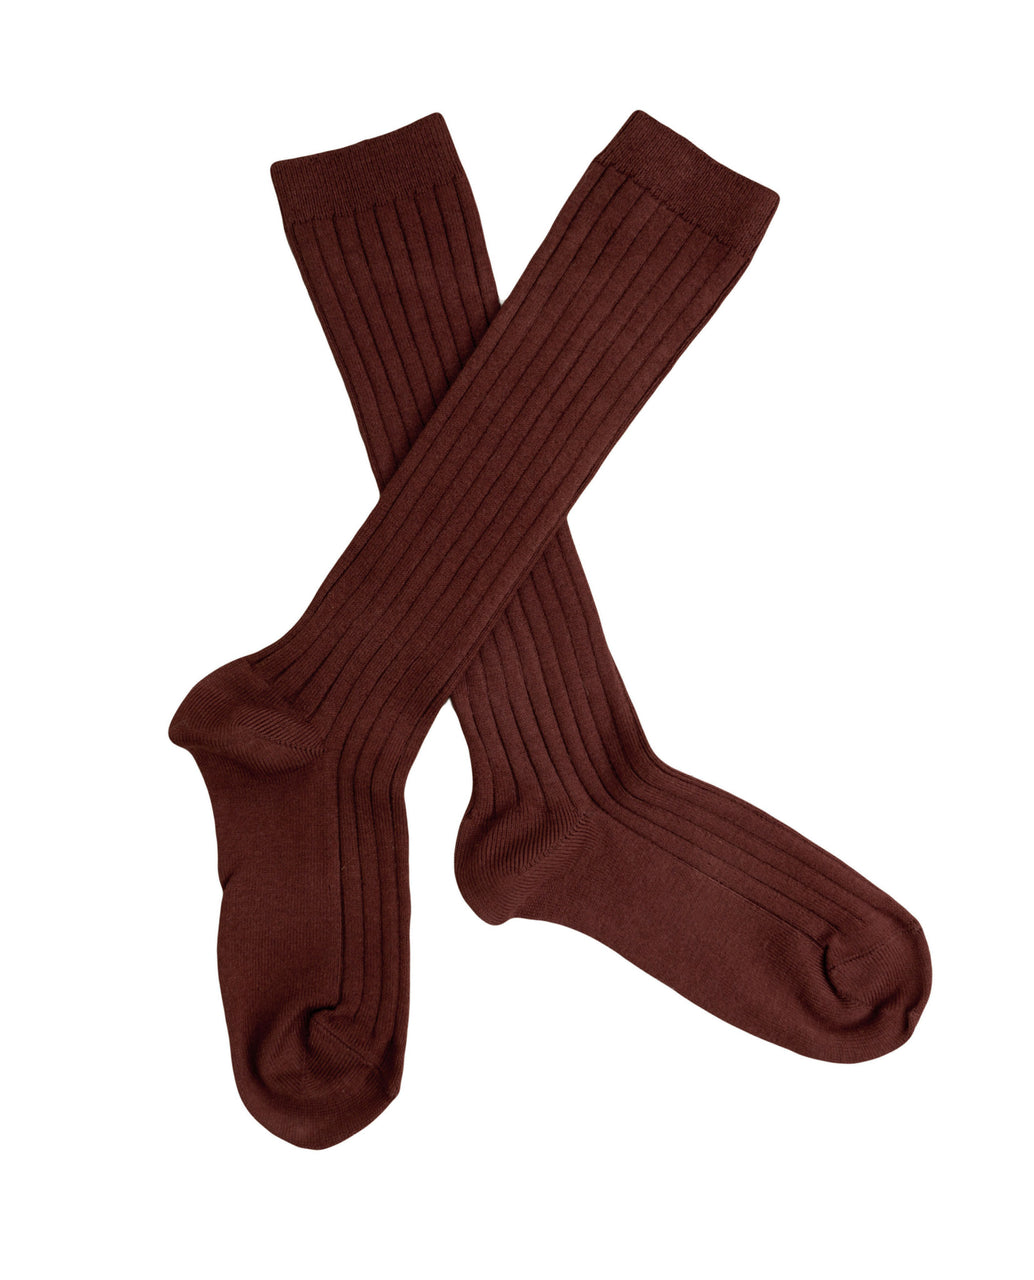 Ribbed knee high socks - conker *NEW*